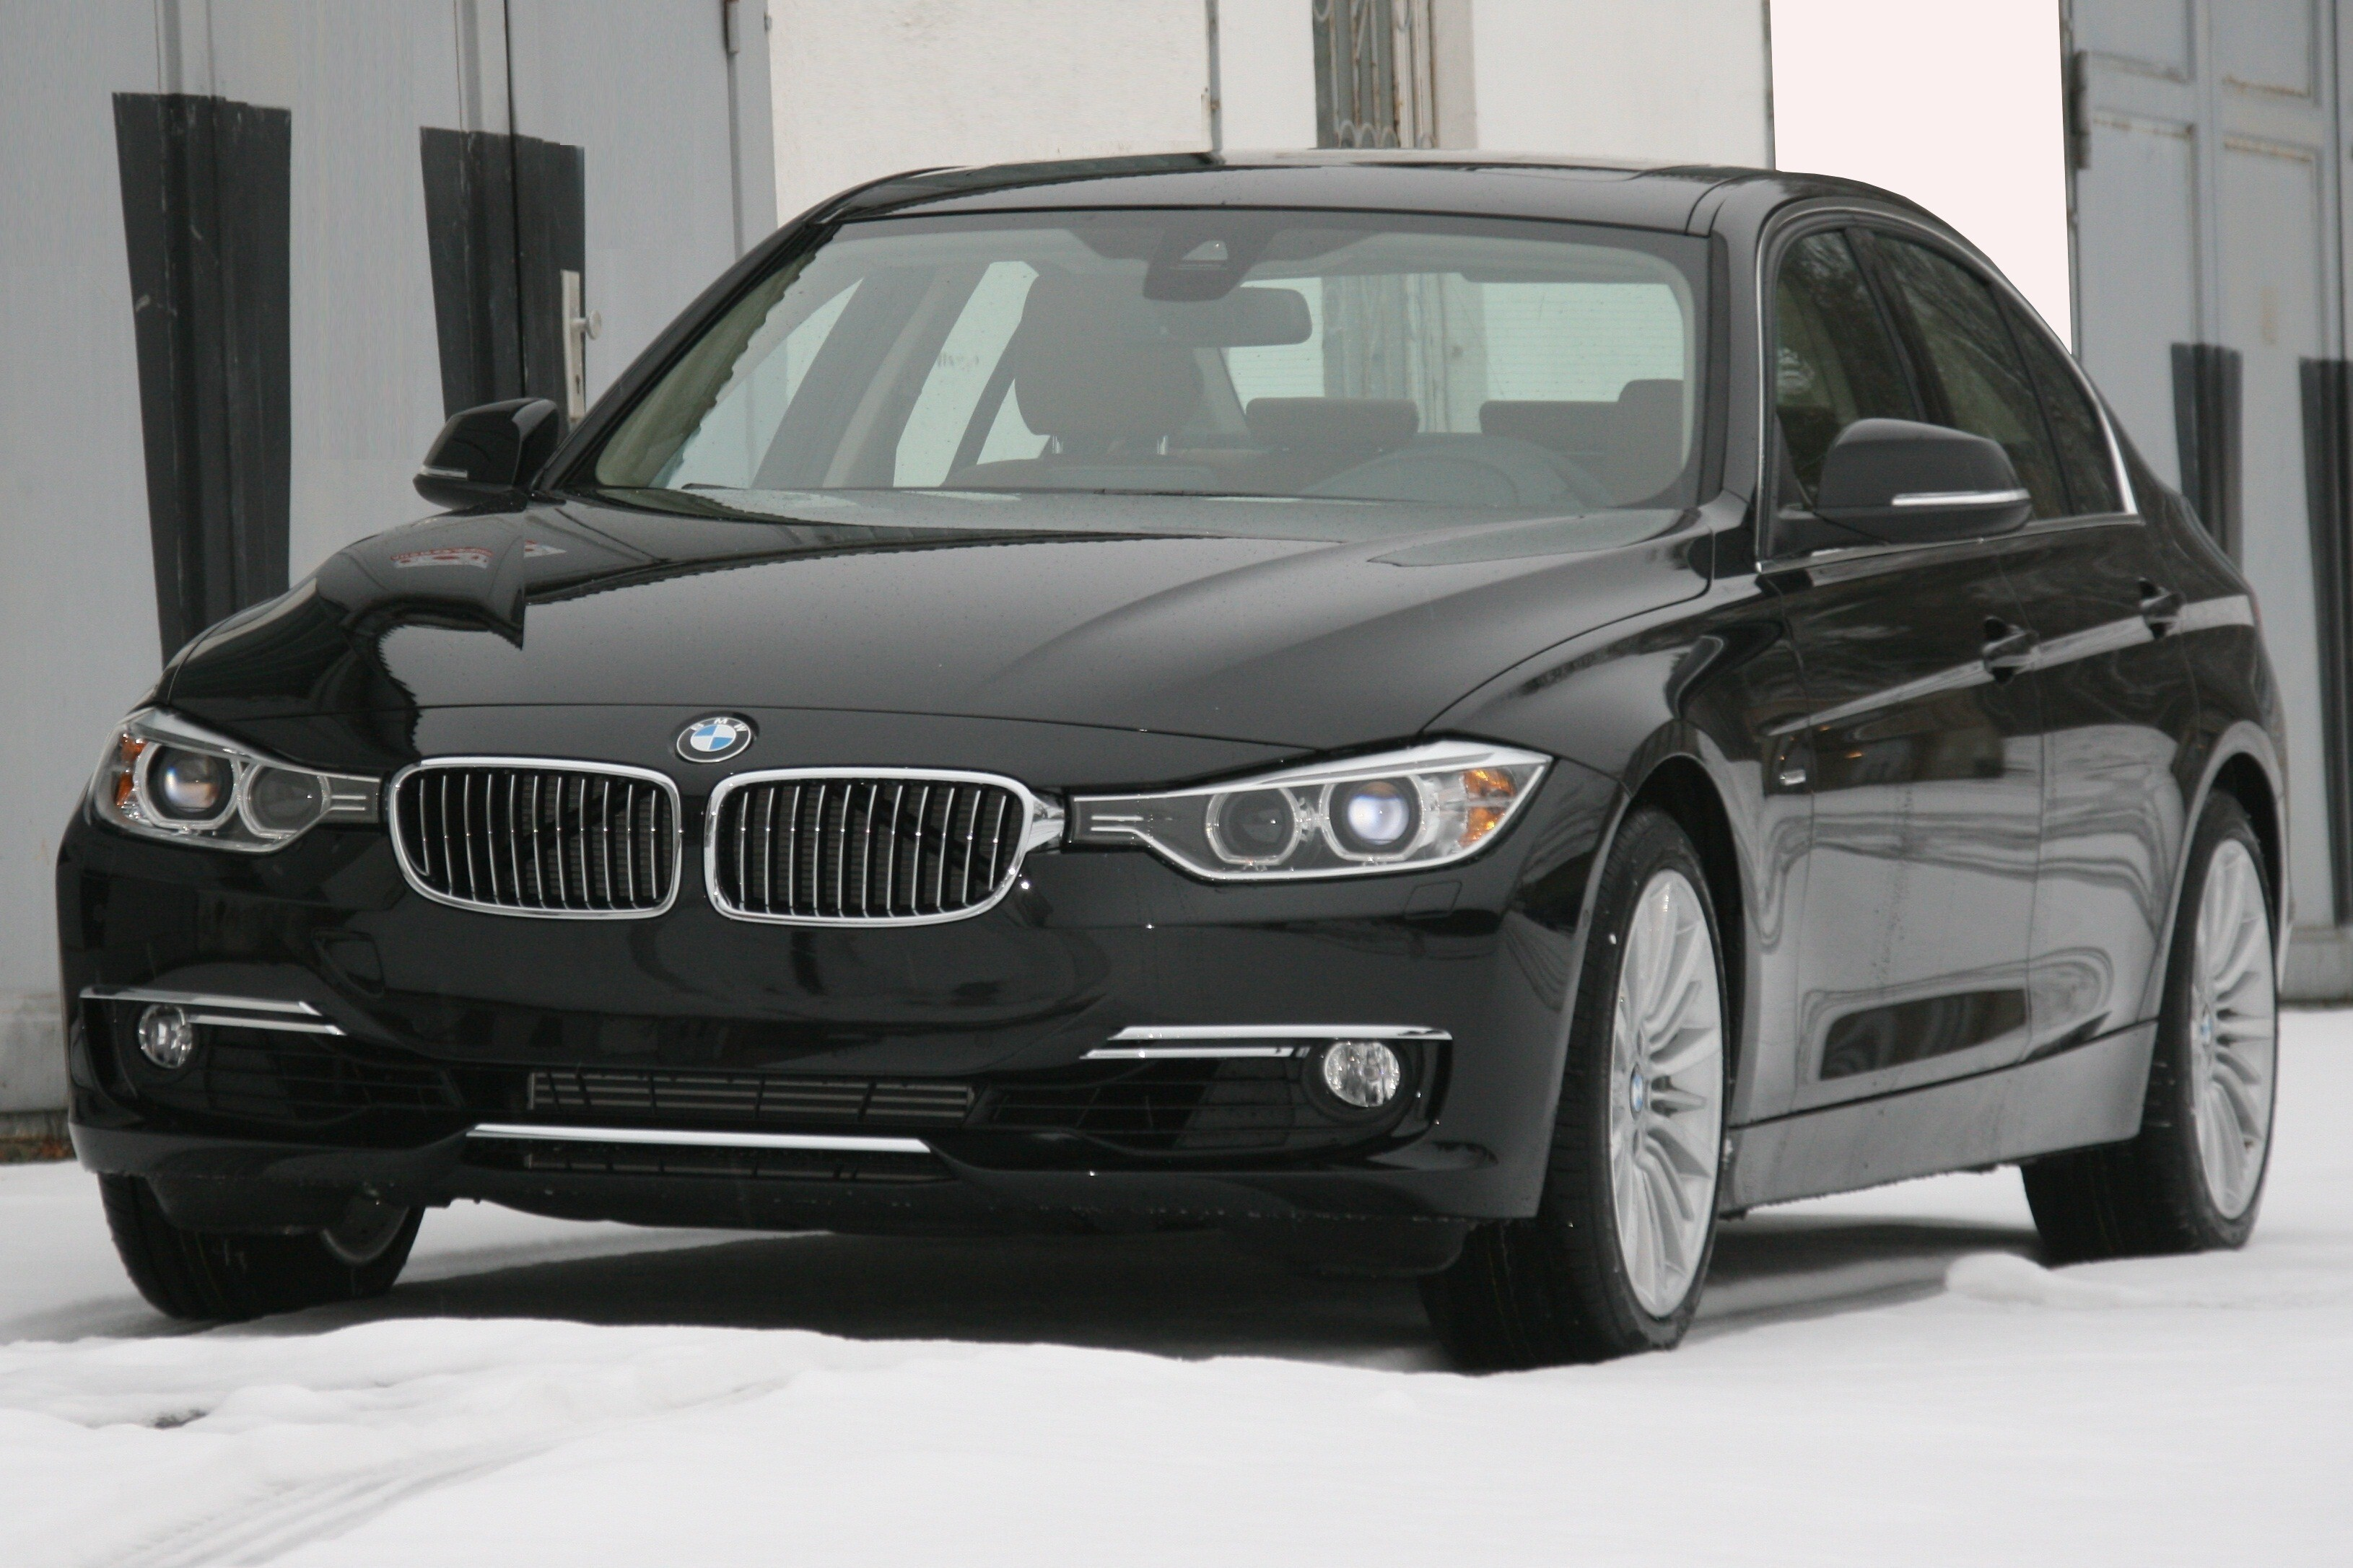 Black Bmw 328i F30 2012 Car Wallpapers Hd Wallpapers